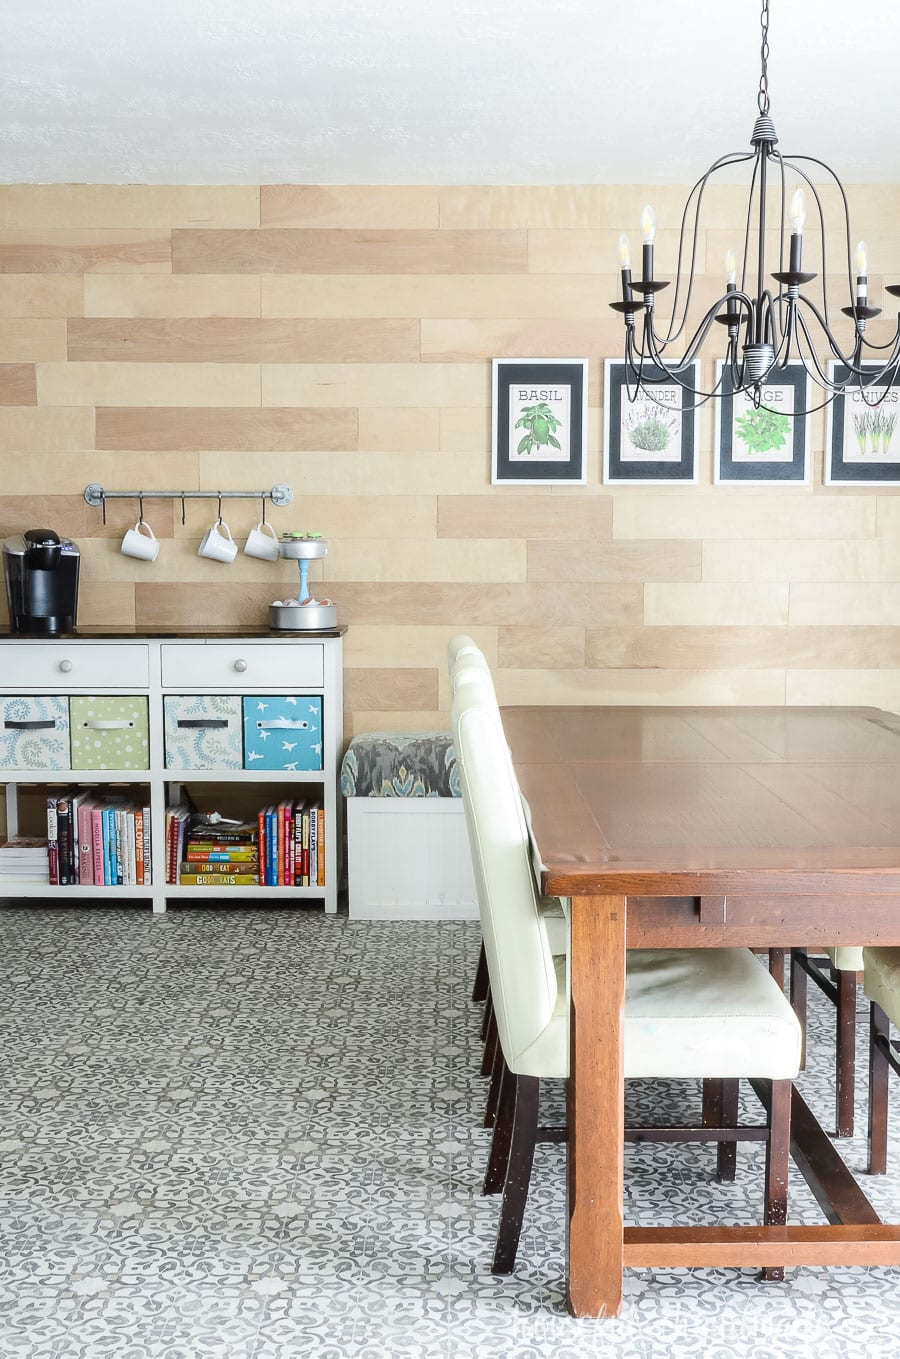 Dining room with black chandelier and wood accent wall. Large rustic table and white coffee station.